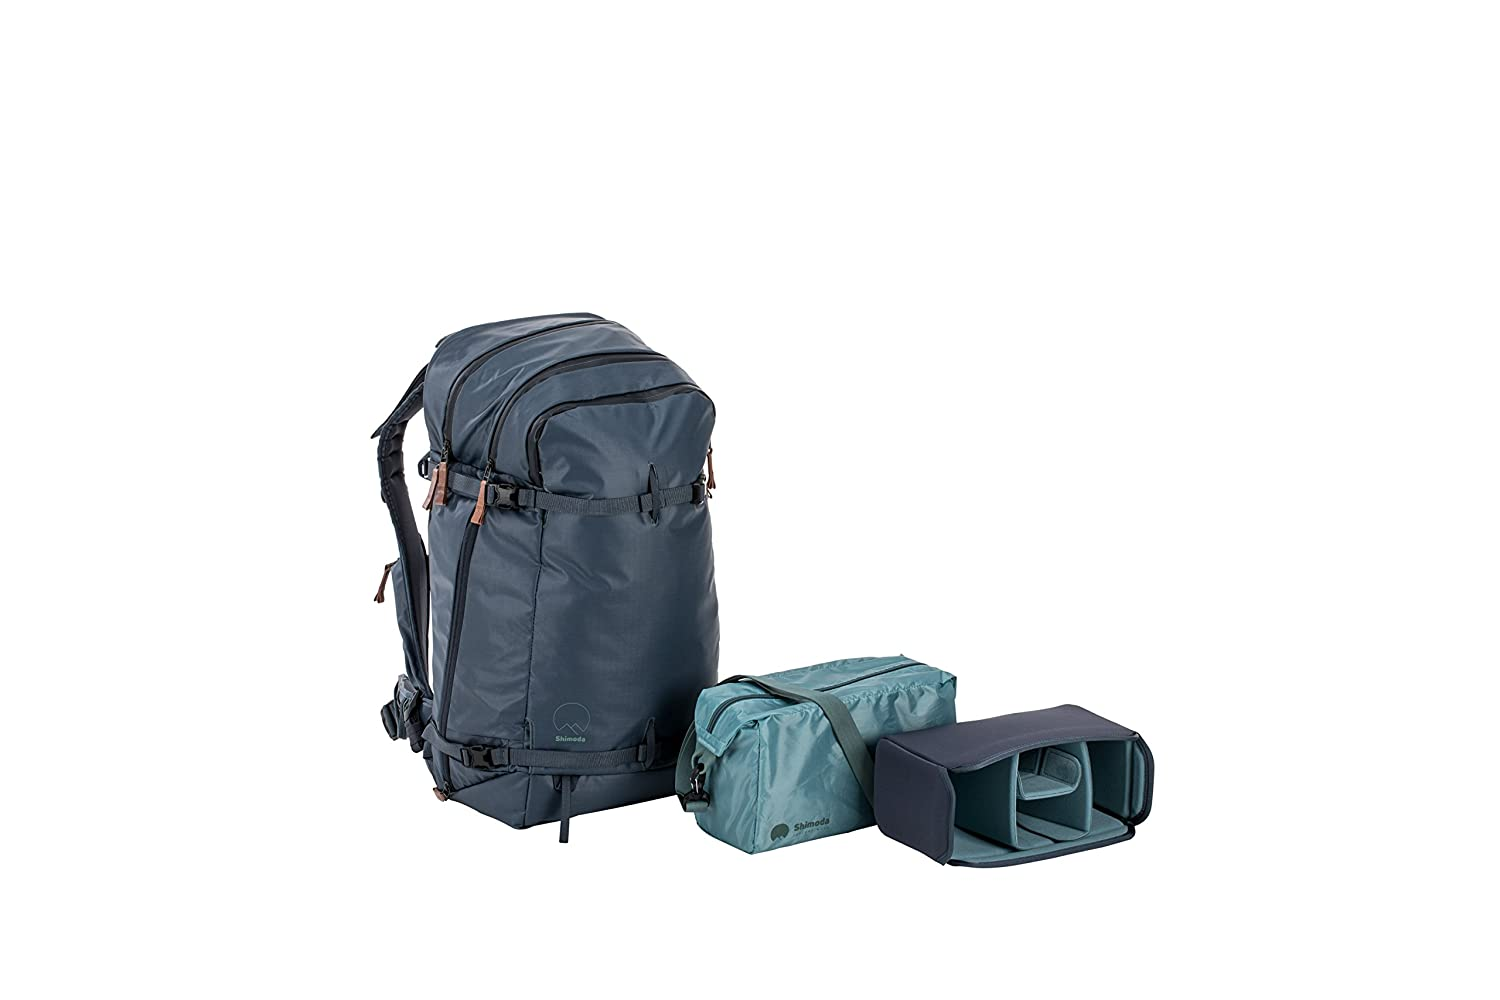 Explore 40 Backpack Starter Kit with 2 Small Core Units (Blue Nights)   B07BKR5CRJ